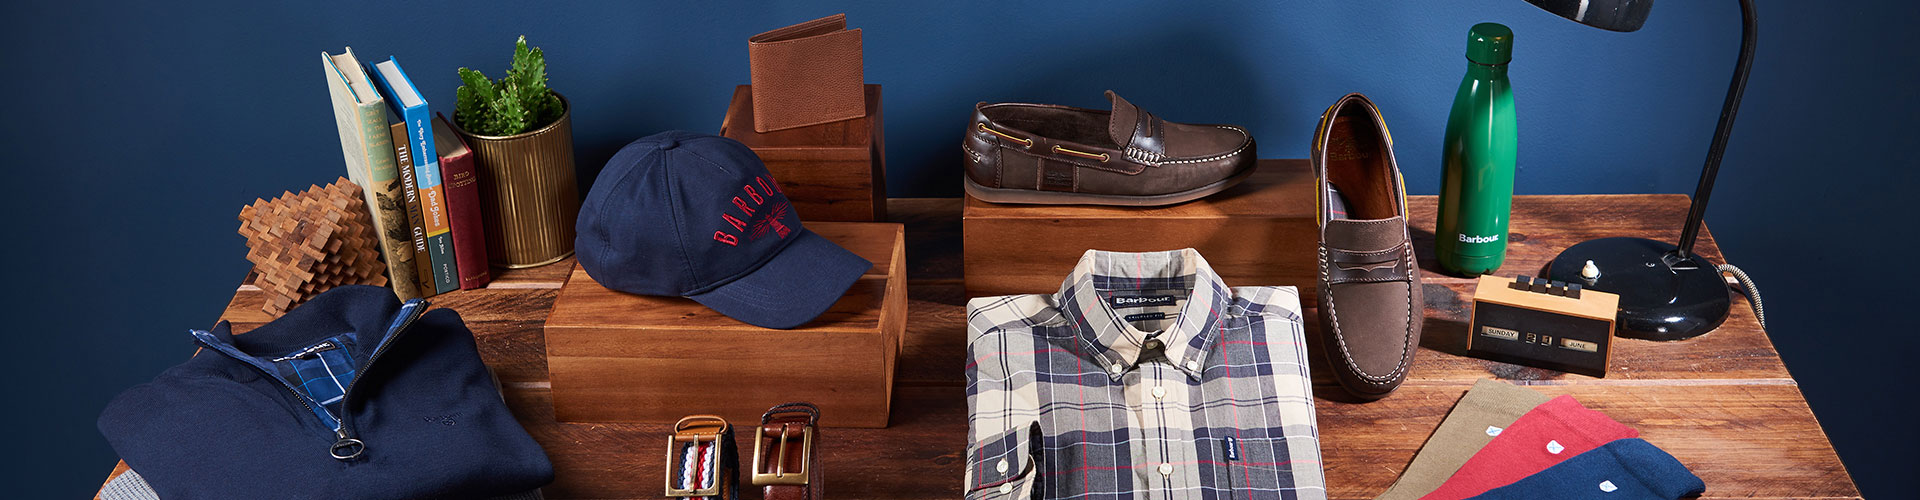 Flat lay of Father's Day office themed items and Barbour gift ideas.